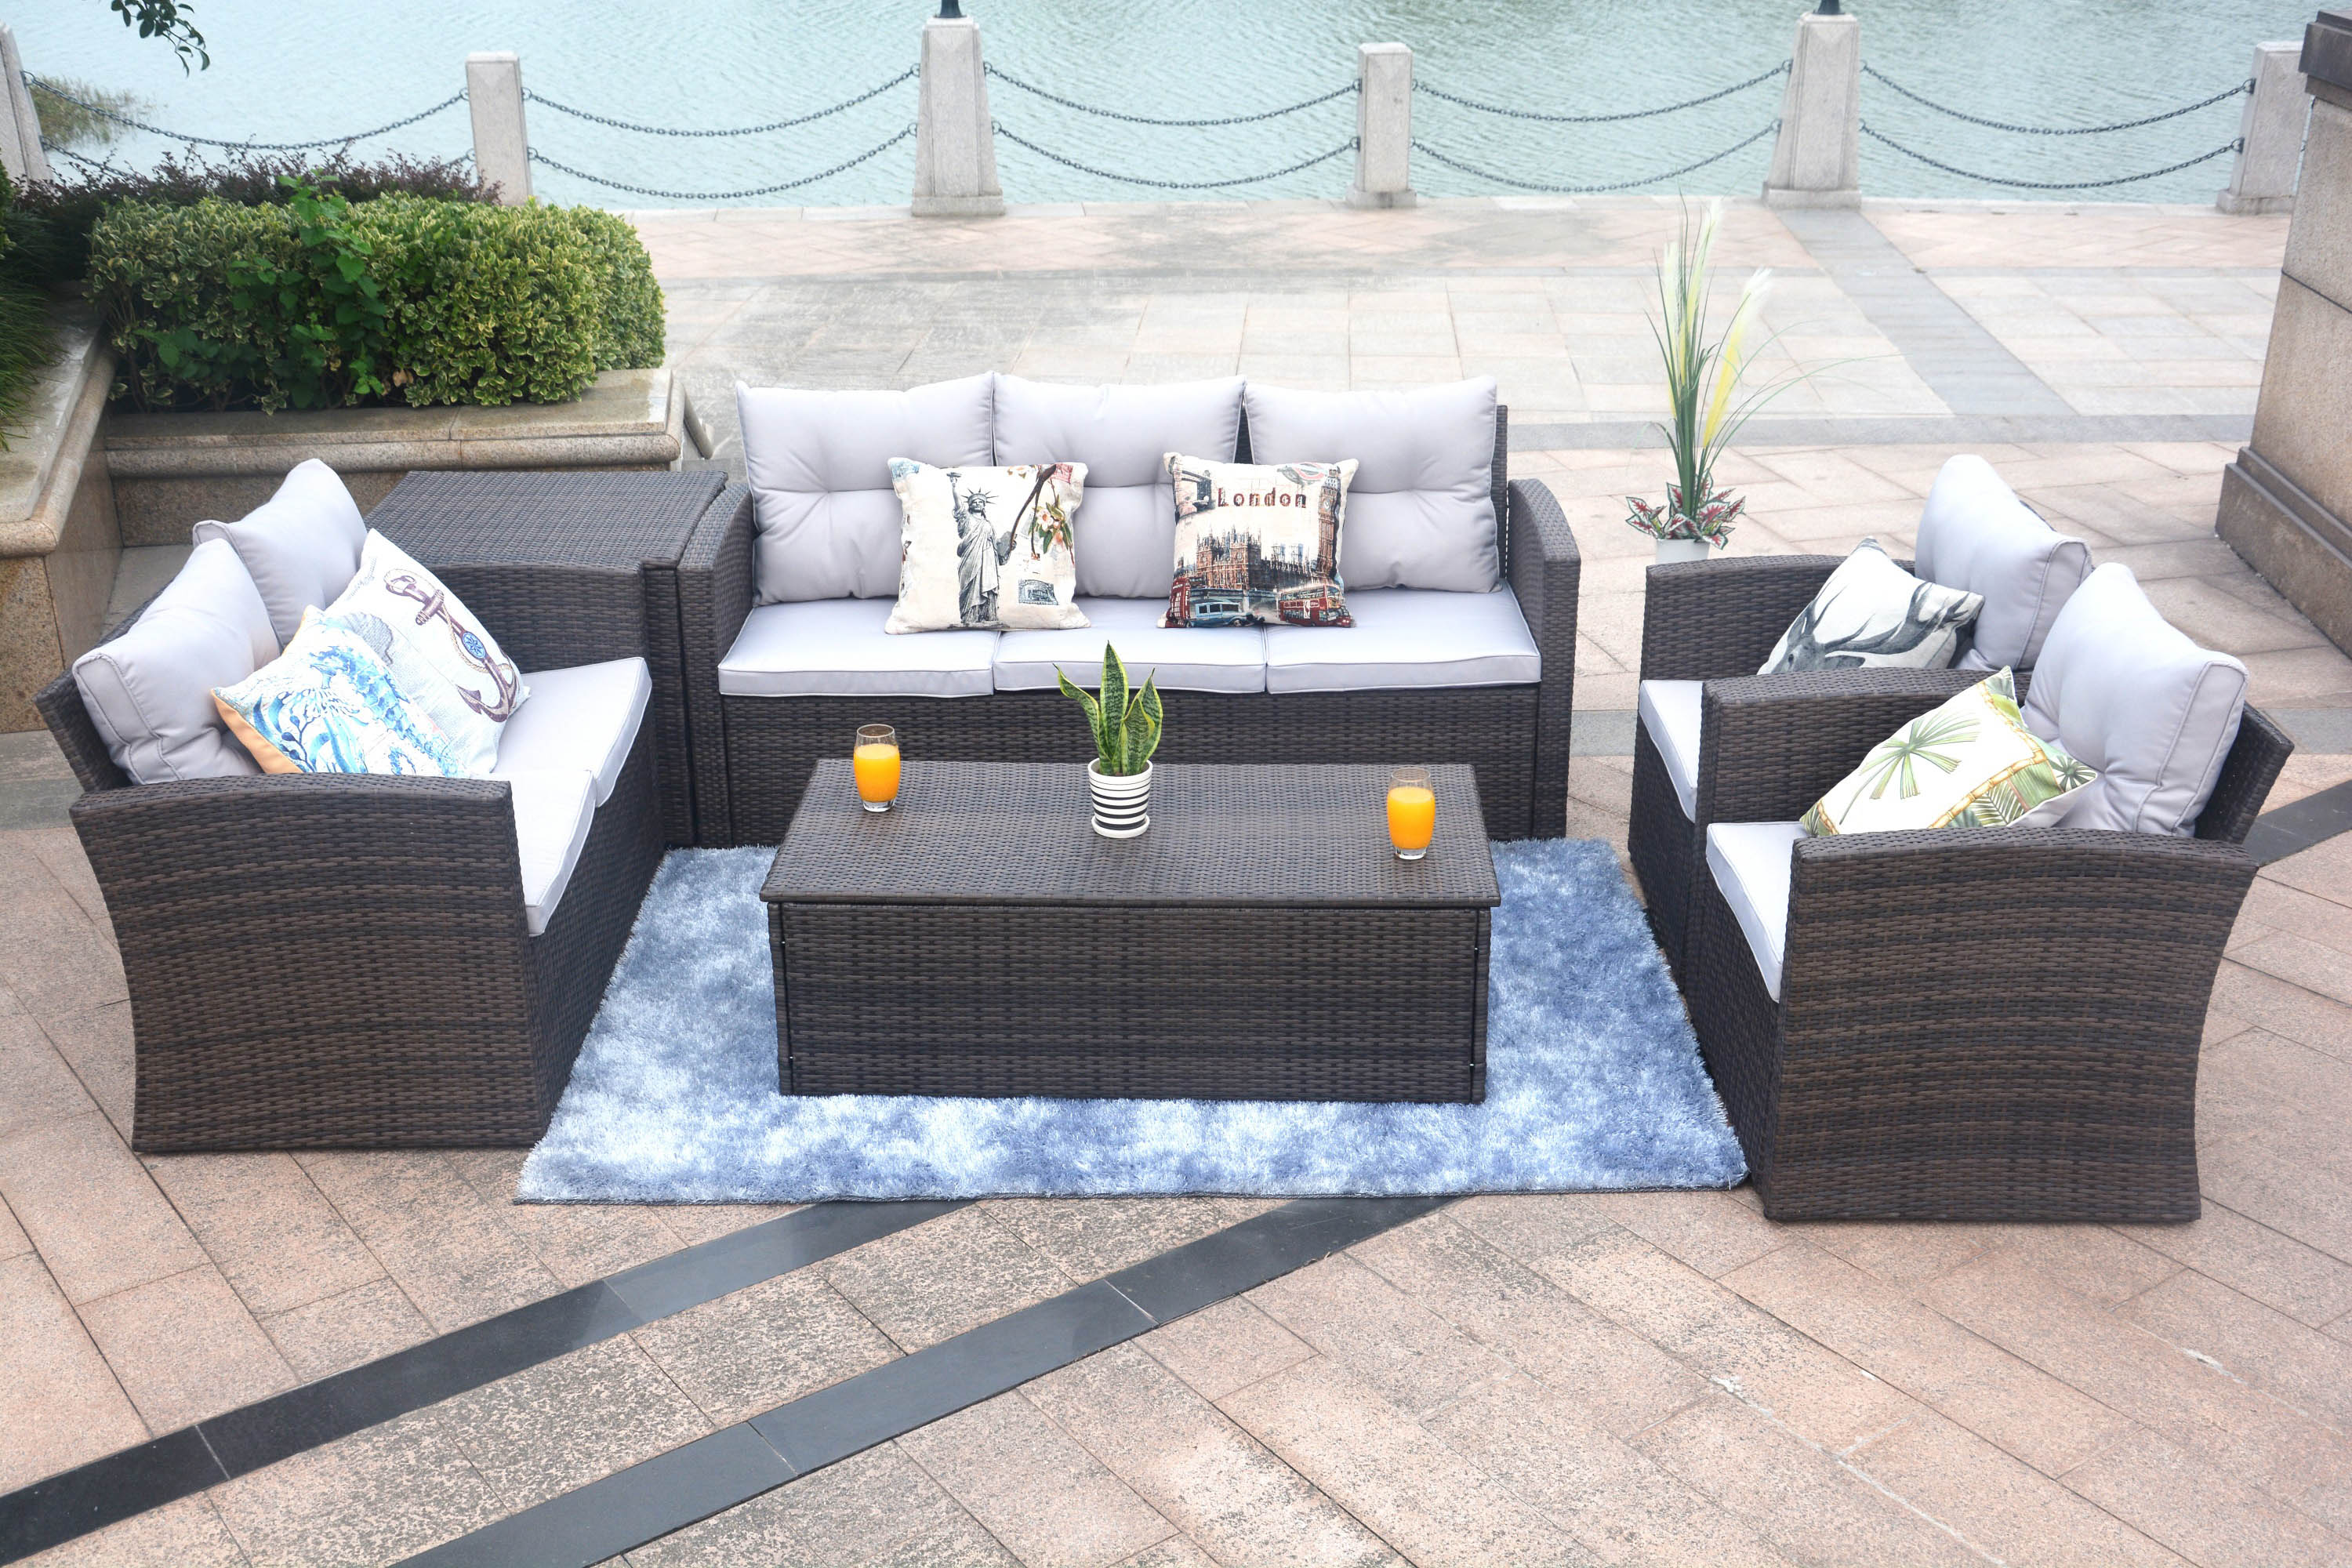 Edmond 6 piece sofa set for outdoors by Mr. backyard